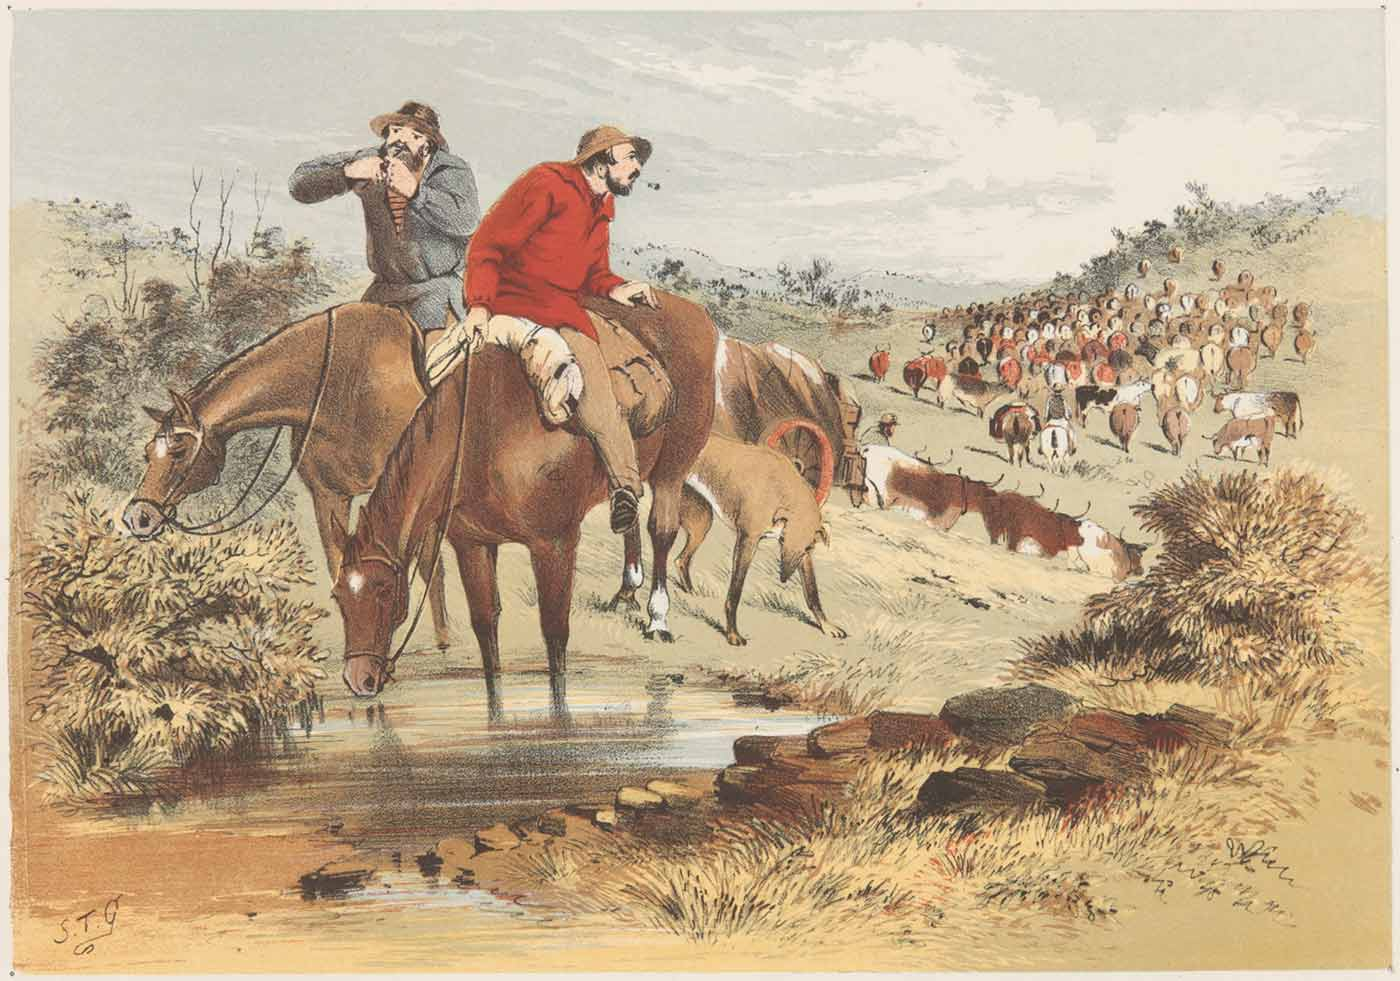 Watercolour painting of two men on horseback with their dog beside them. One man is looking back over his shoulder towards a large herd of cattle and drovers in the distance. - click to view larger image